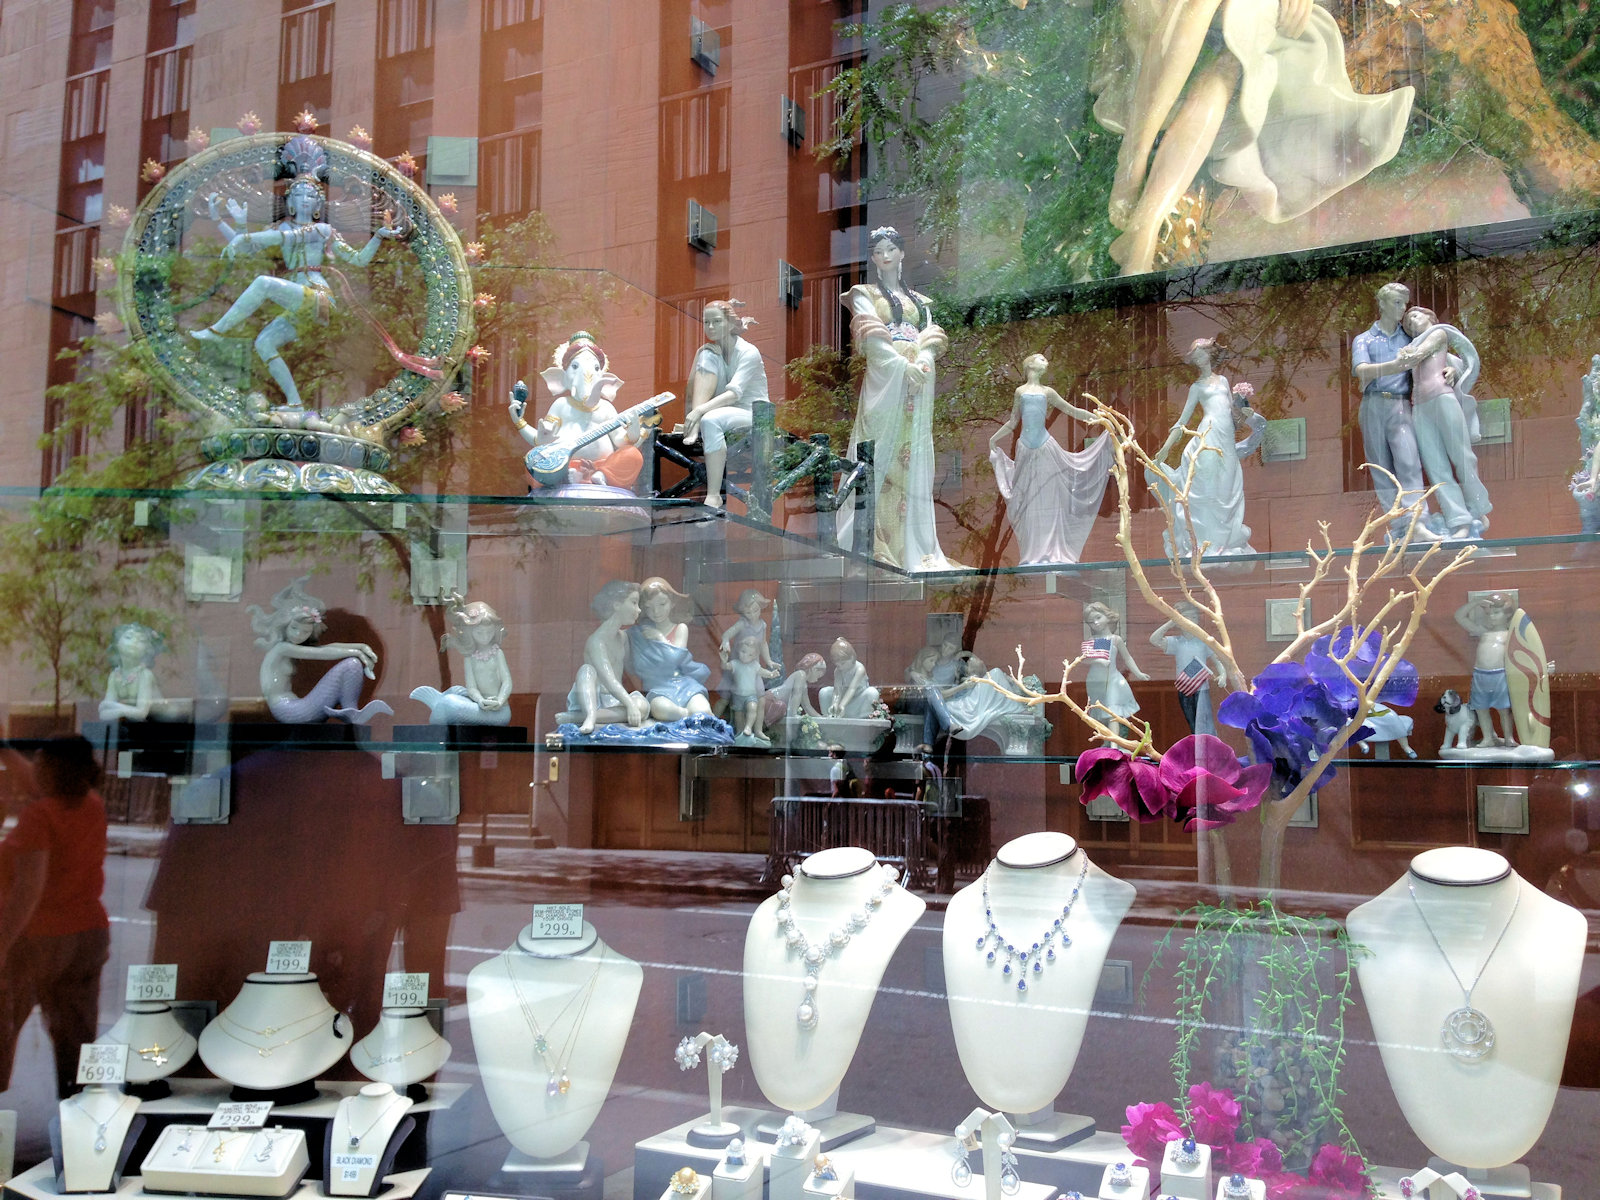 jewelry and ceramic figurines in a store window